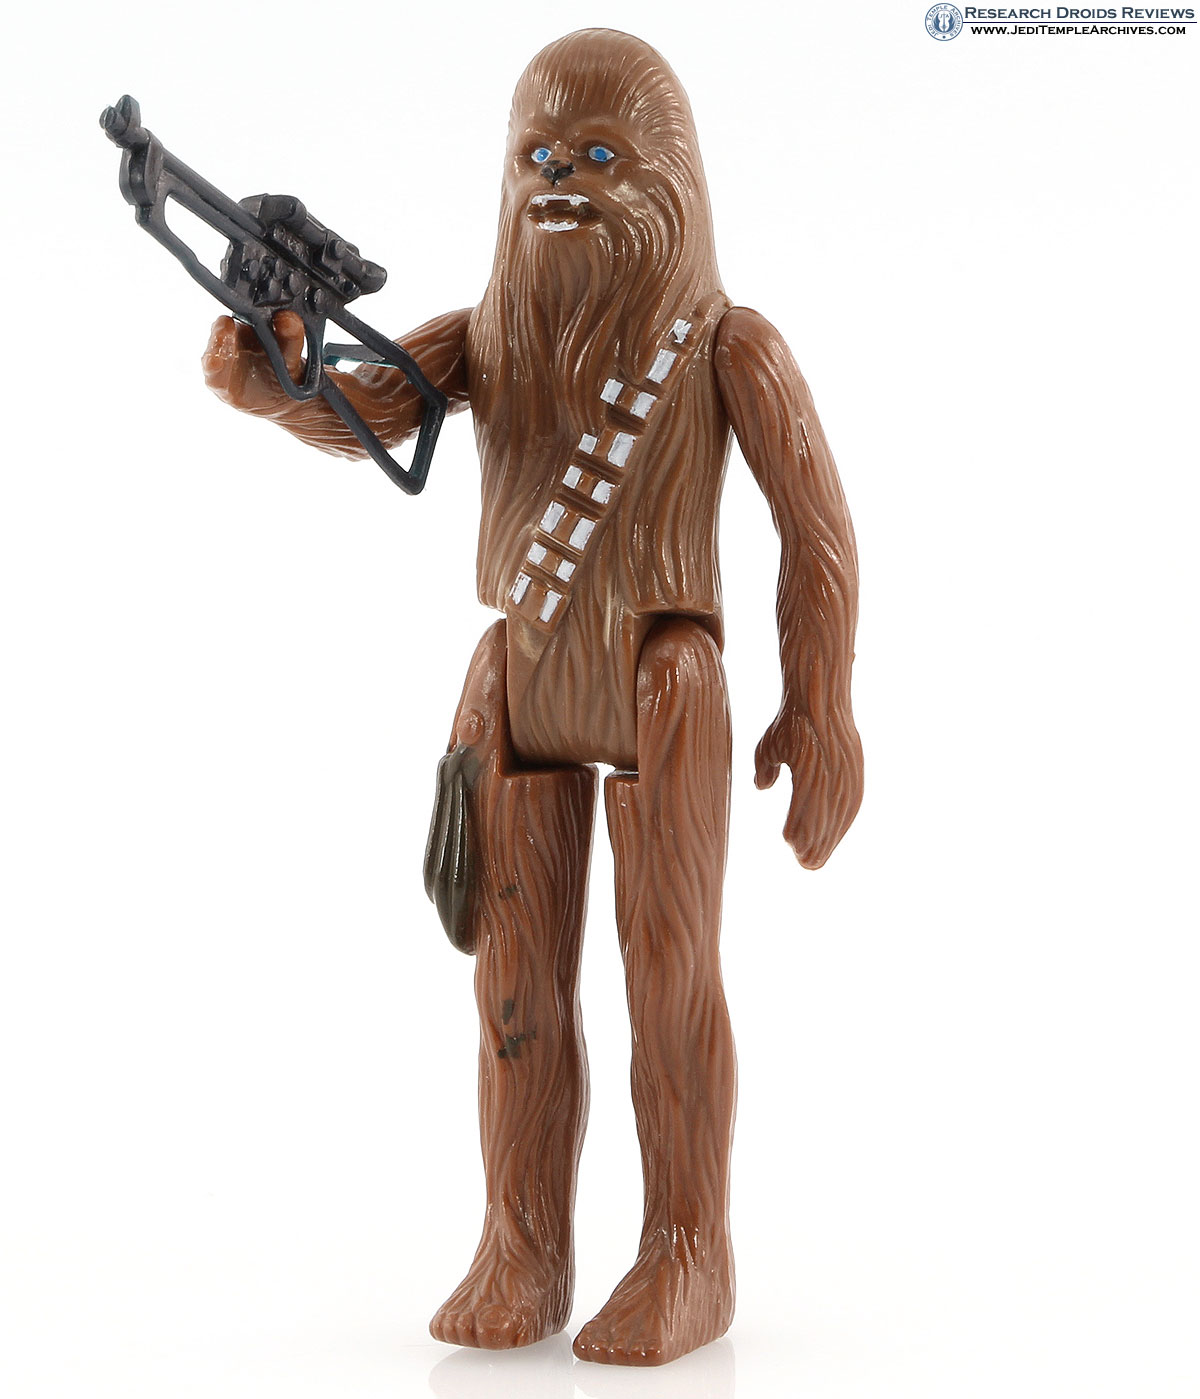 Review_VKChewbaccaSW017.jpg